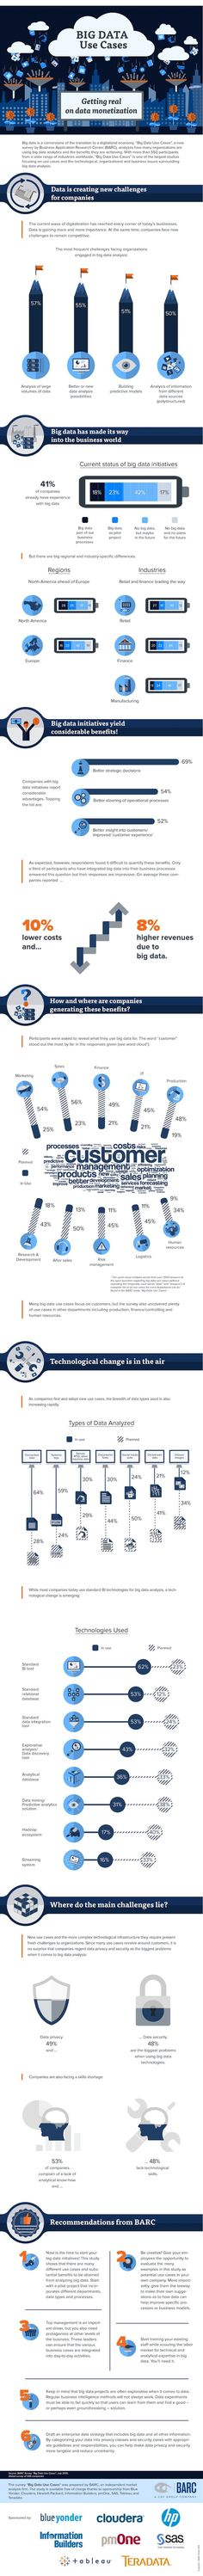 How Is Big Data Making A Real Impact And Being Monetized? #bigdata #infographic